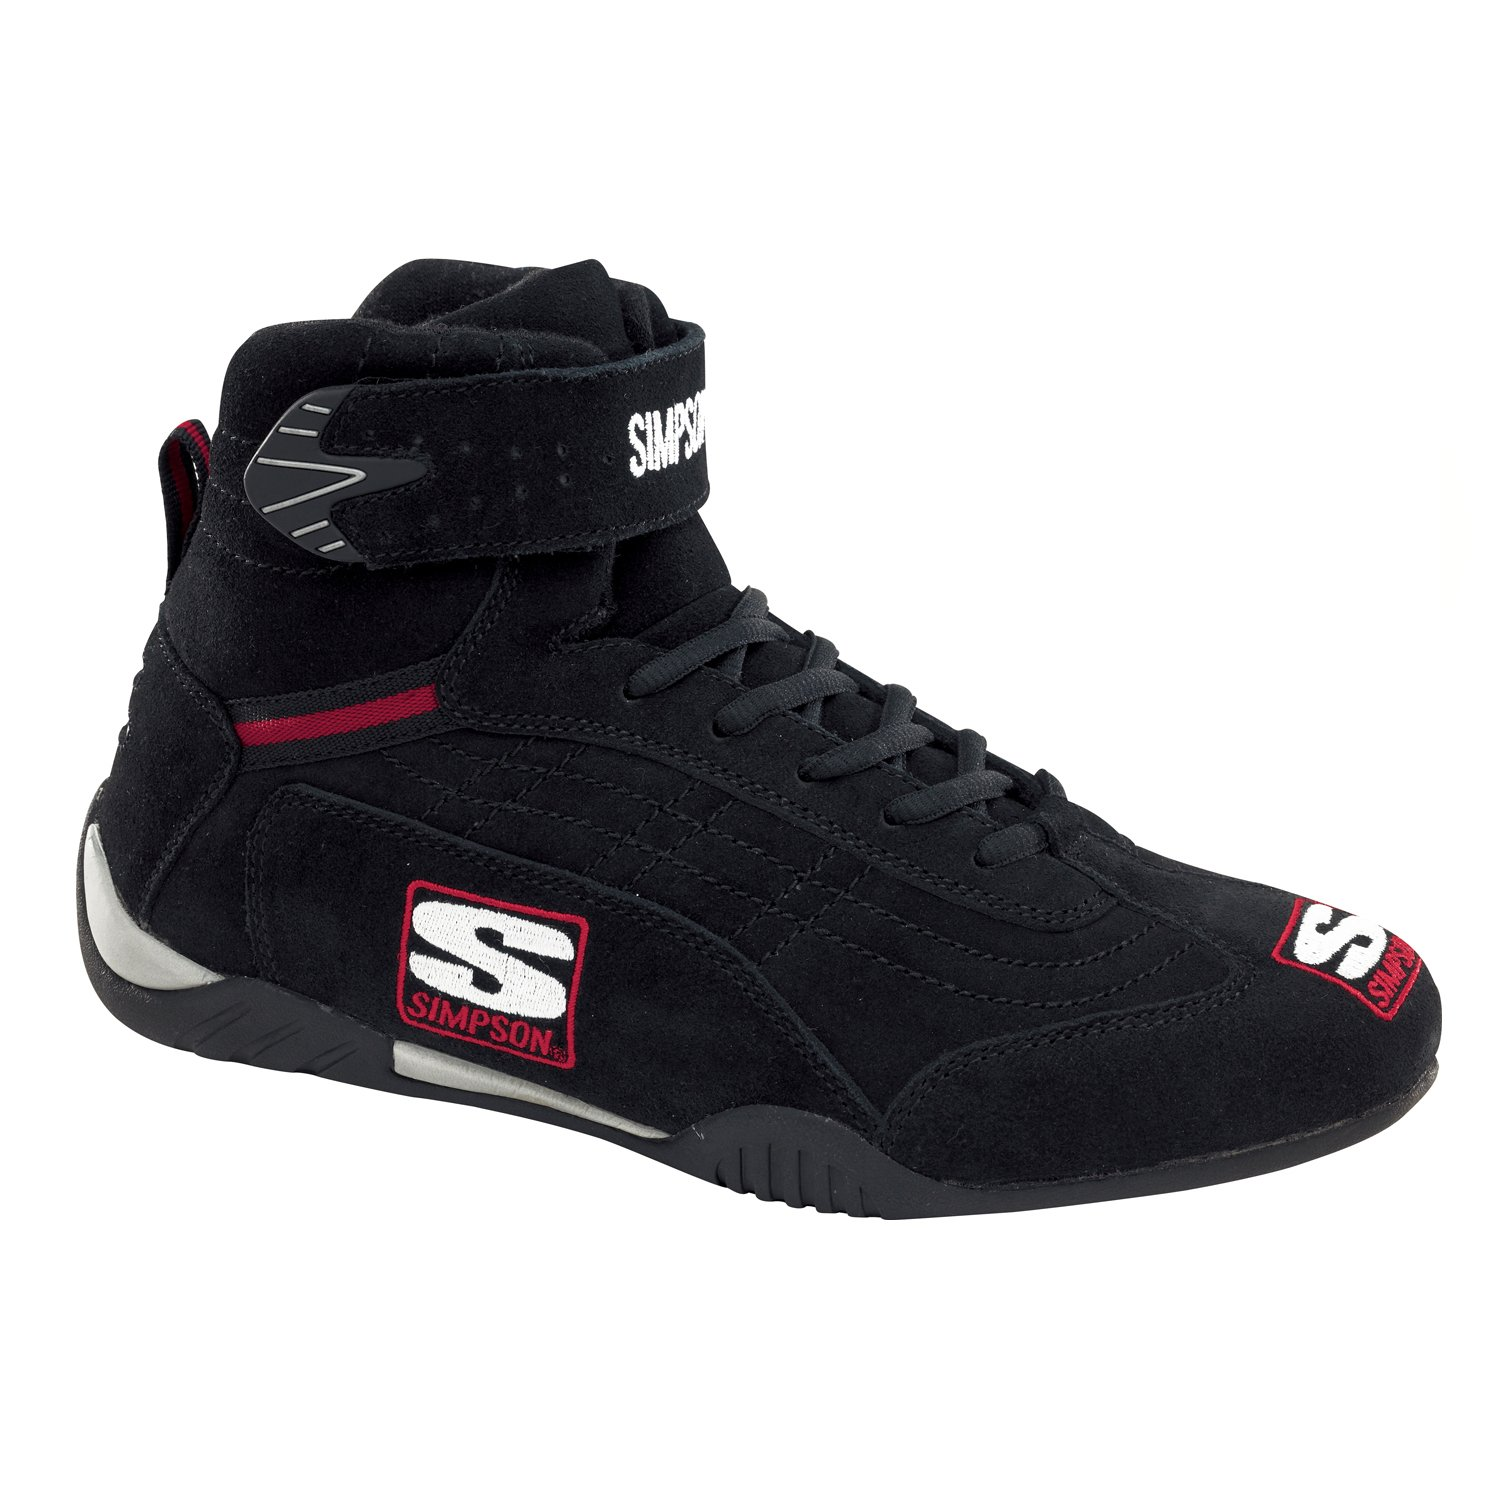 Simpson Racing AD130BK Adrenaline Black Size 13 SFI Approved Driving Shoes